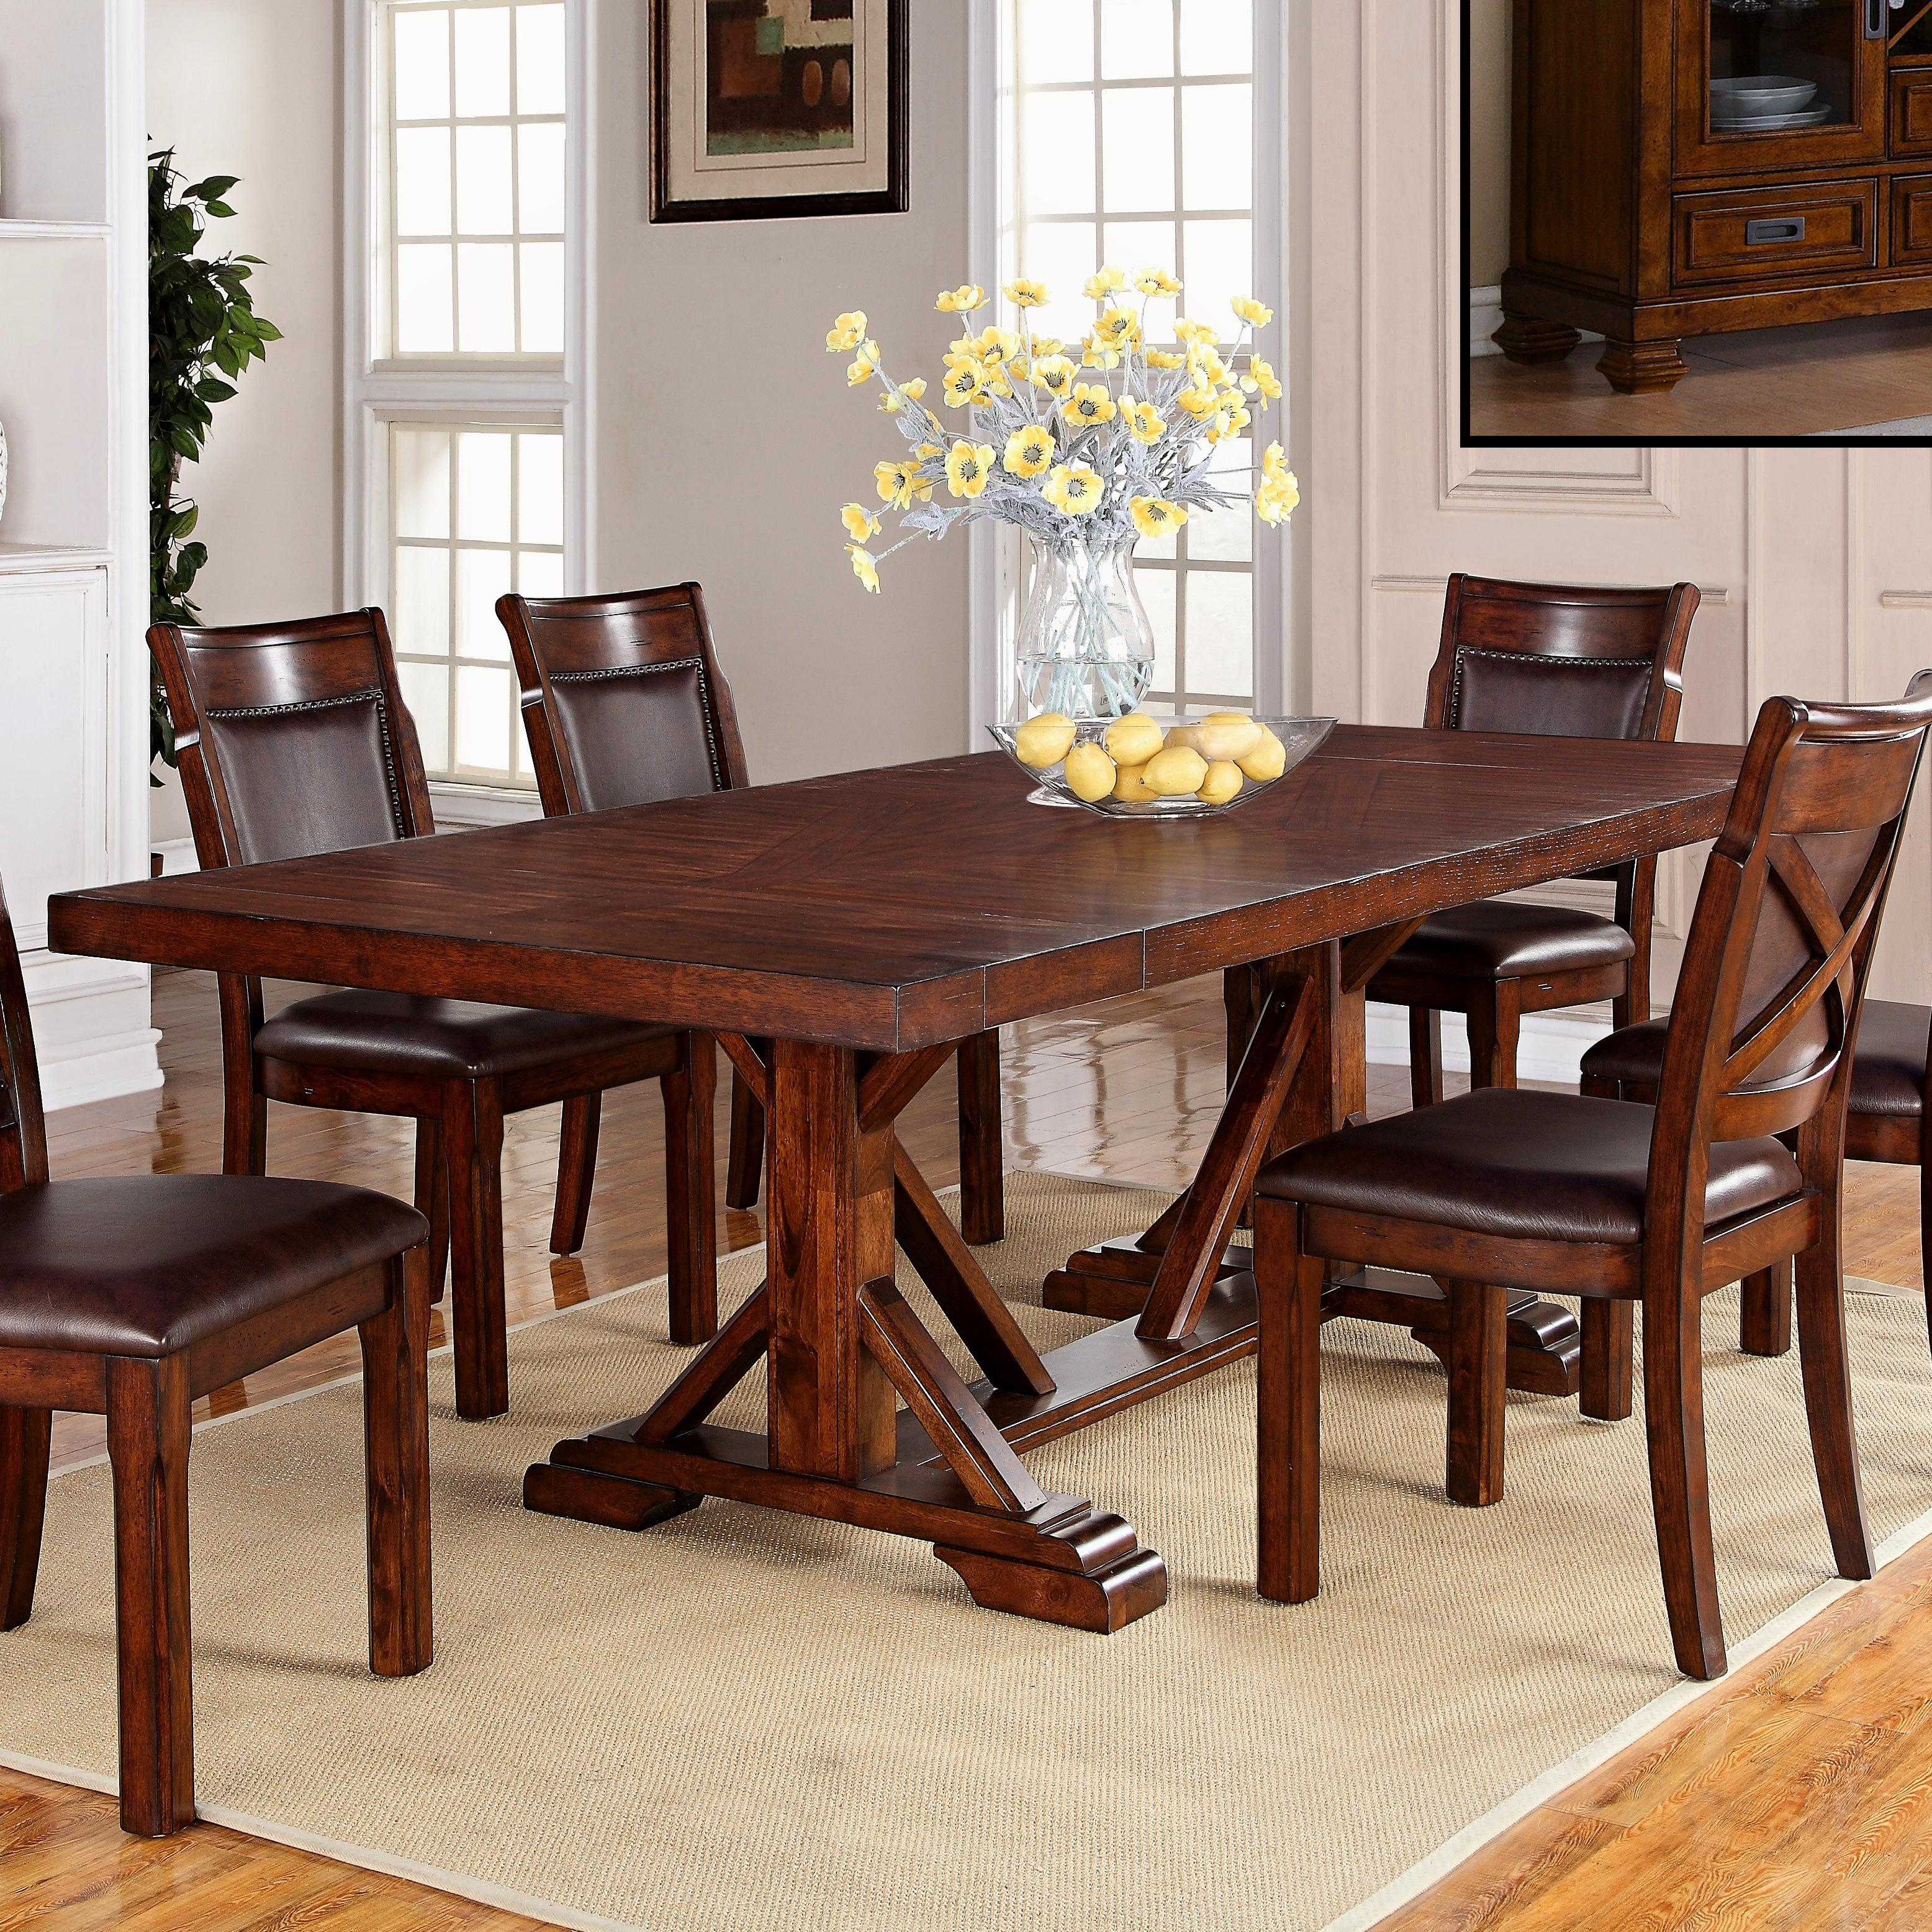 Cascade trestle dining table with two leaves walkers furniture dining room table spokane kennewick tri cities wenatchee coeur dalene yakima